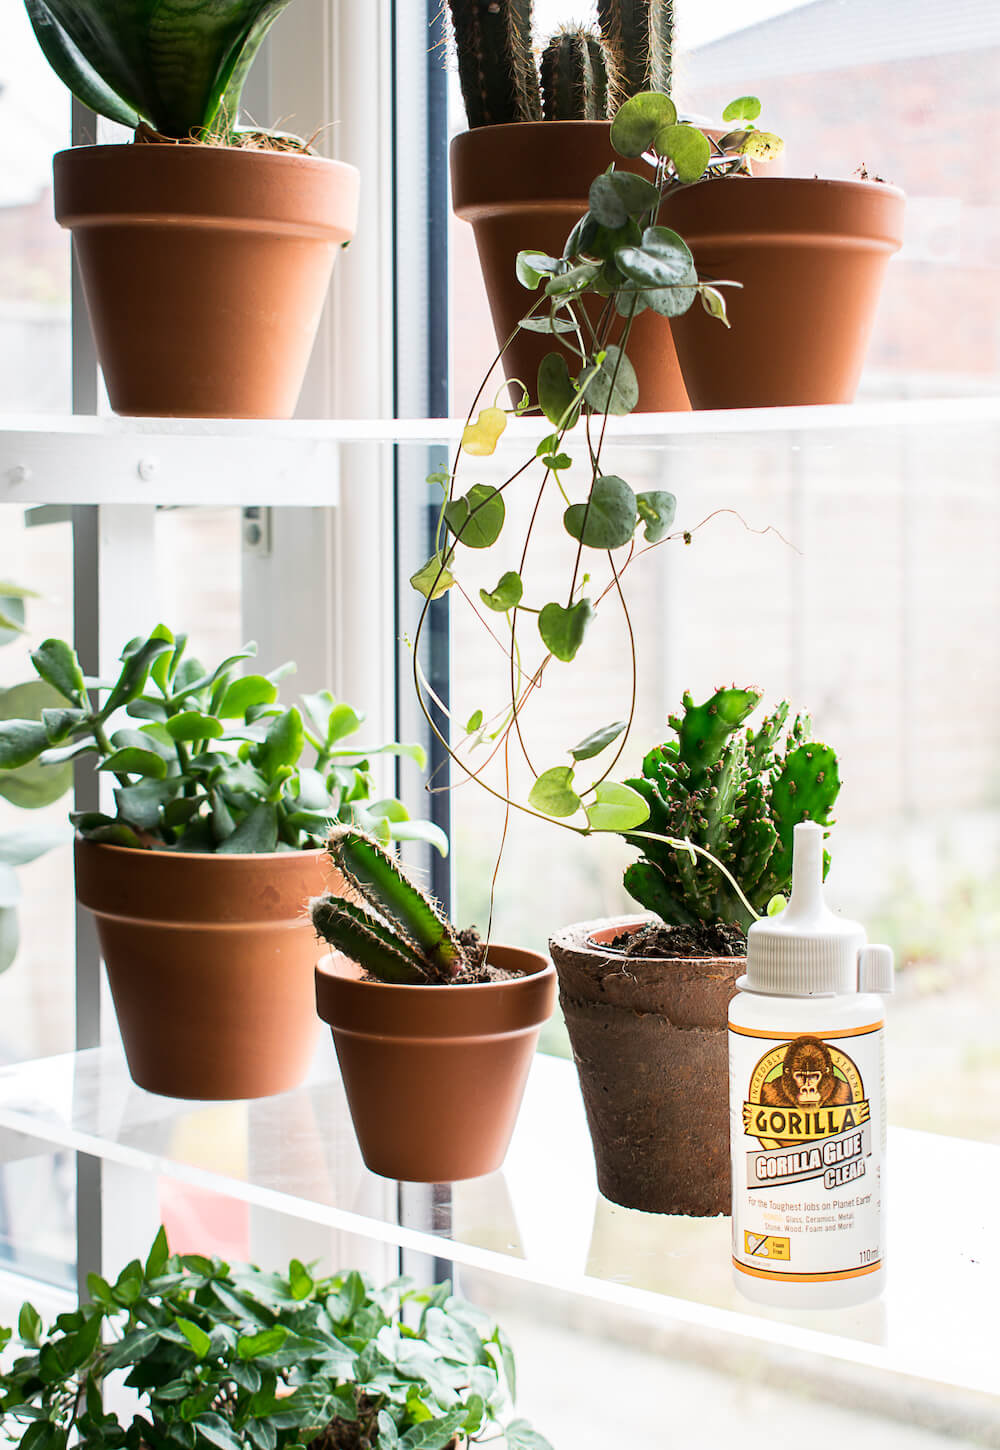 Image of gorilla clear glue on the third shelf next to a cactus plant